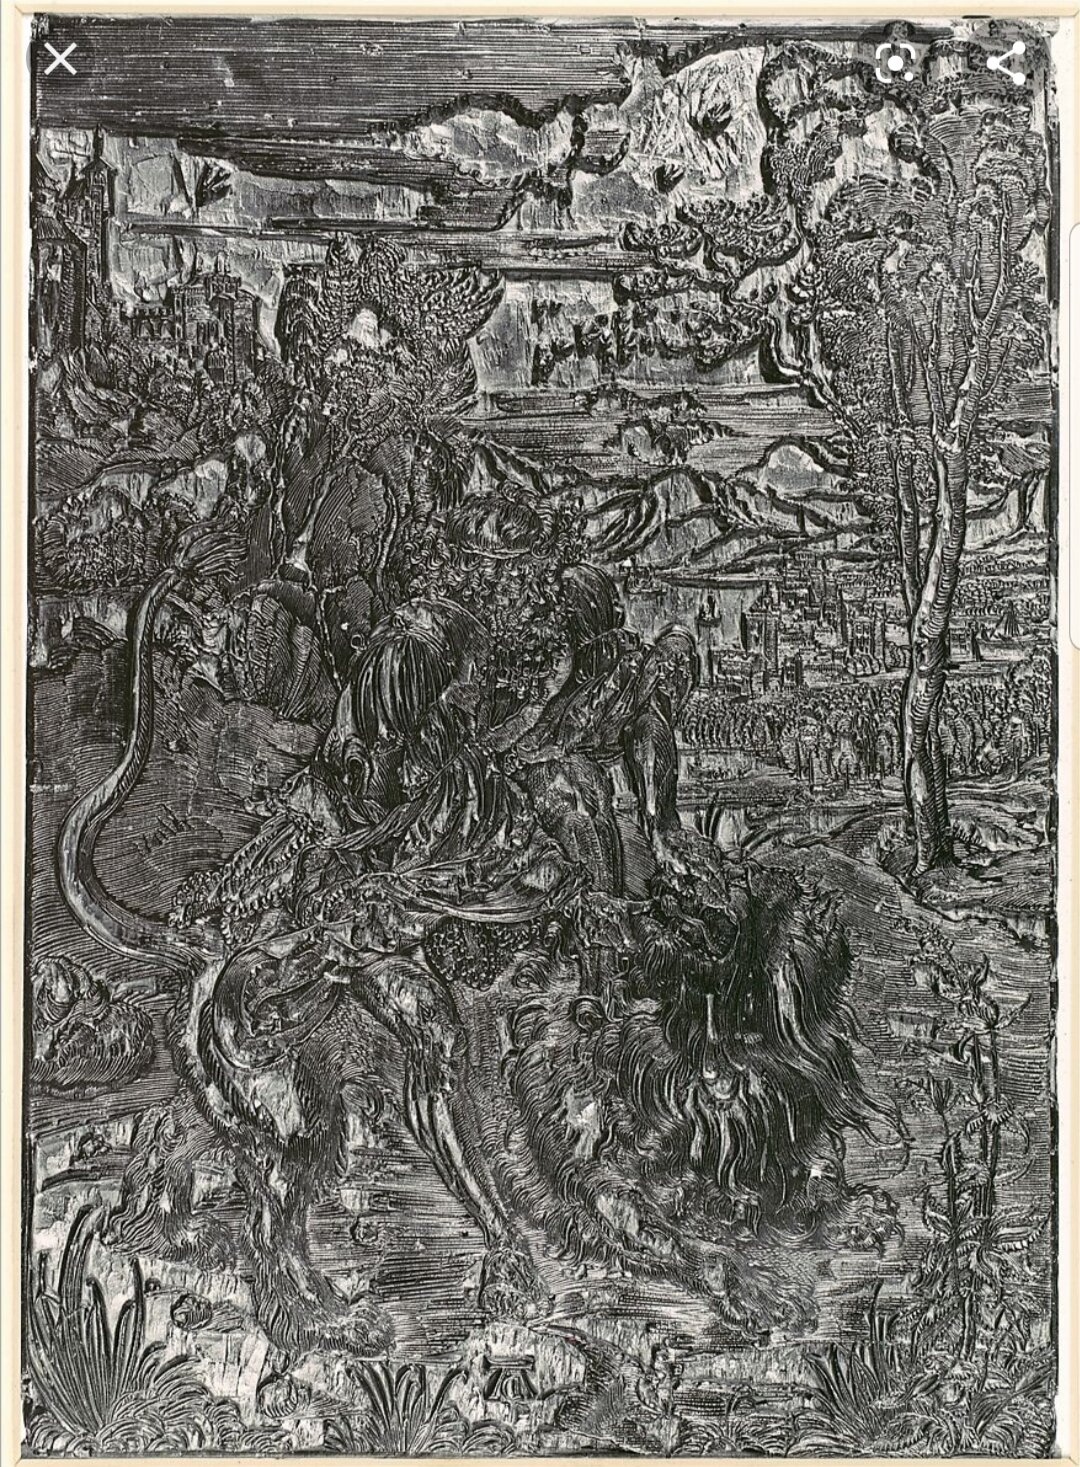 The block from Durer's Samson Rending the Lion. Year 1497-98